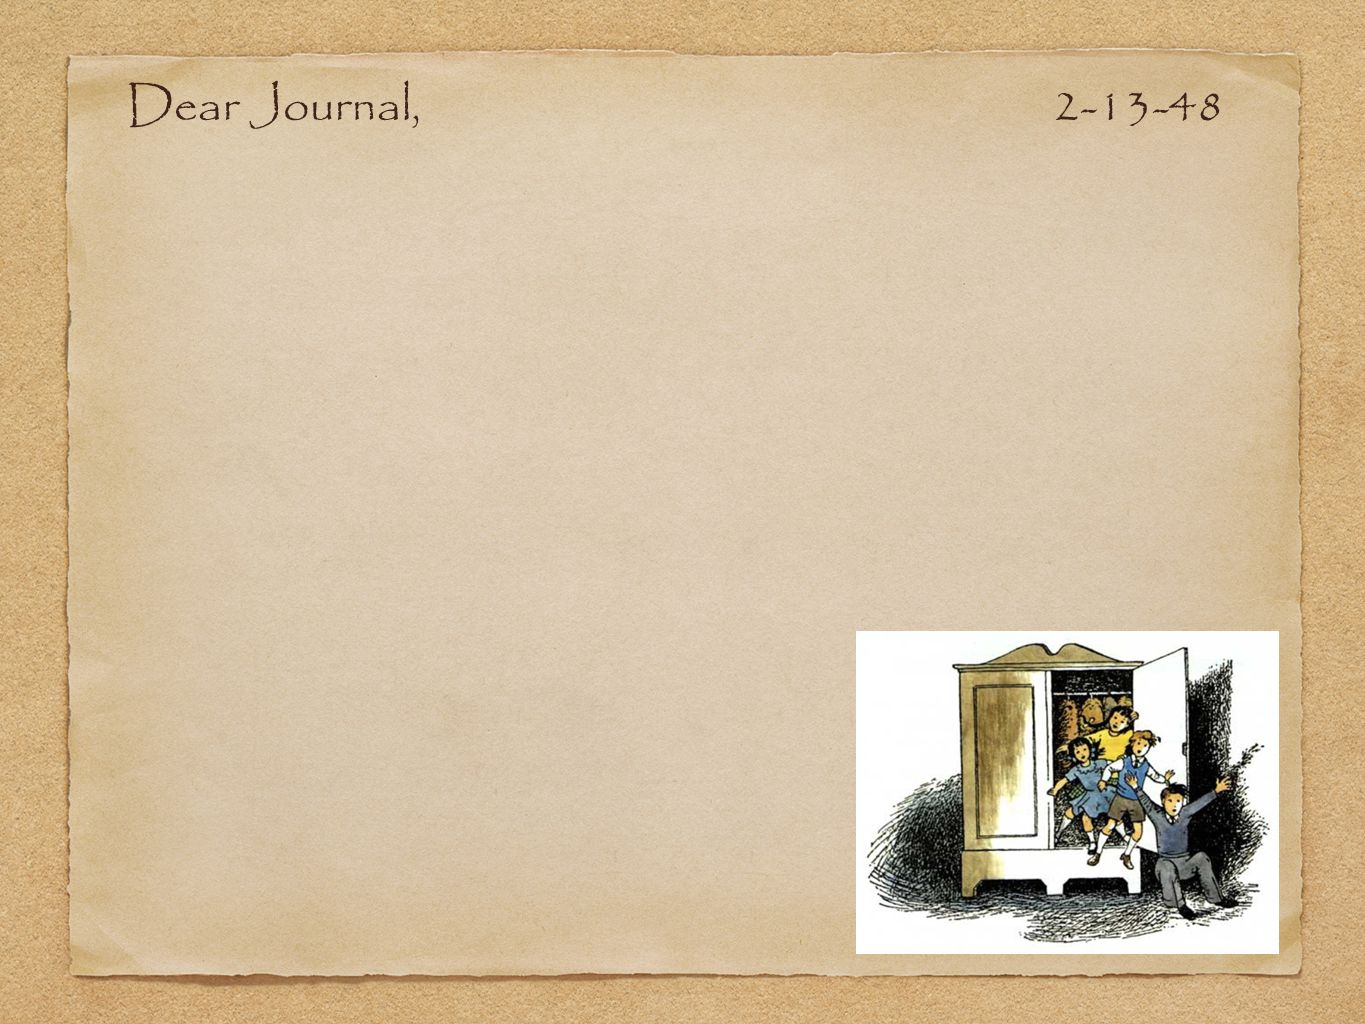 Dear Journal, 2-13-48